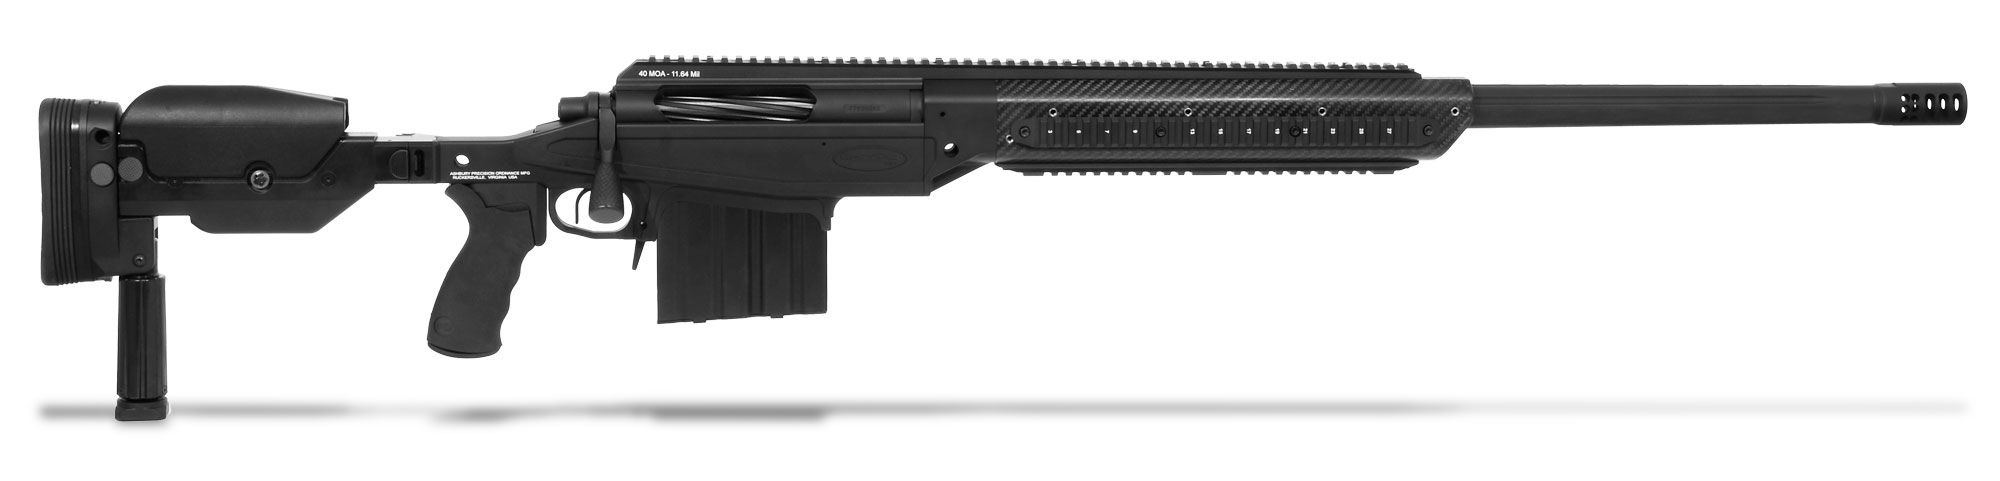 CheyTac M300 Intervention .375 Cheytac Black Rifle